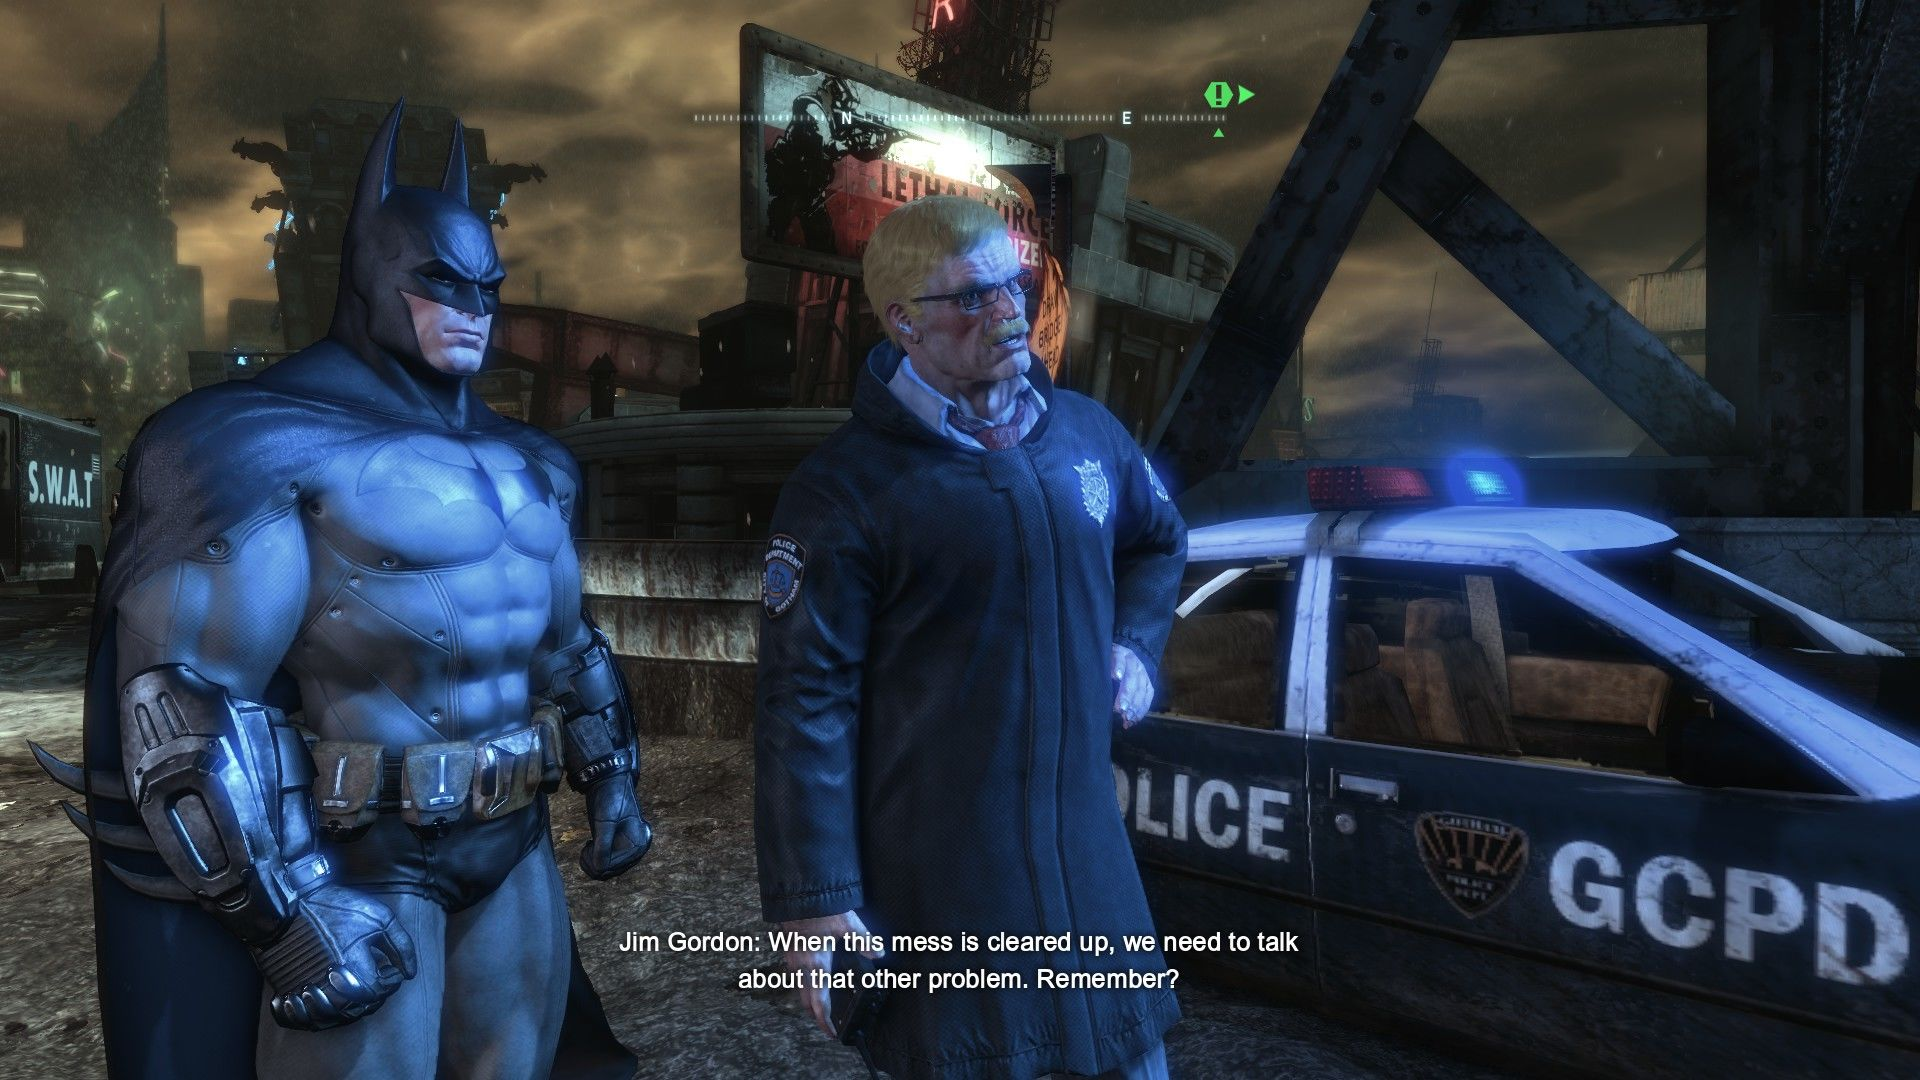 Batman: Arkham City - Harley Quinn's Revenge Windows Some GCPD officers were captured by Harley Quinn. Guess who'll have to save them?